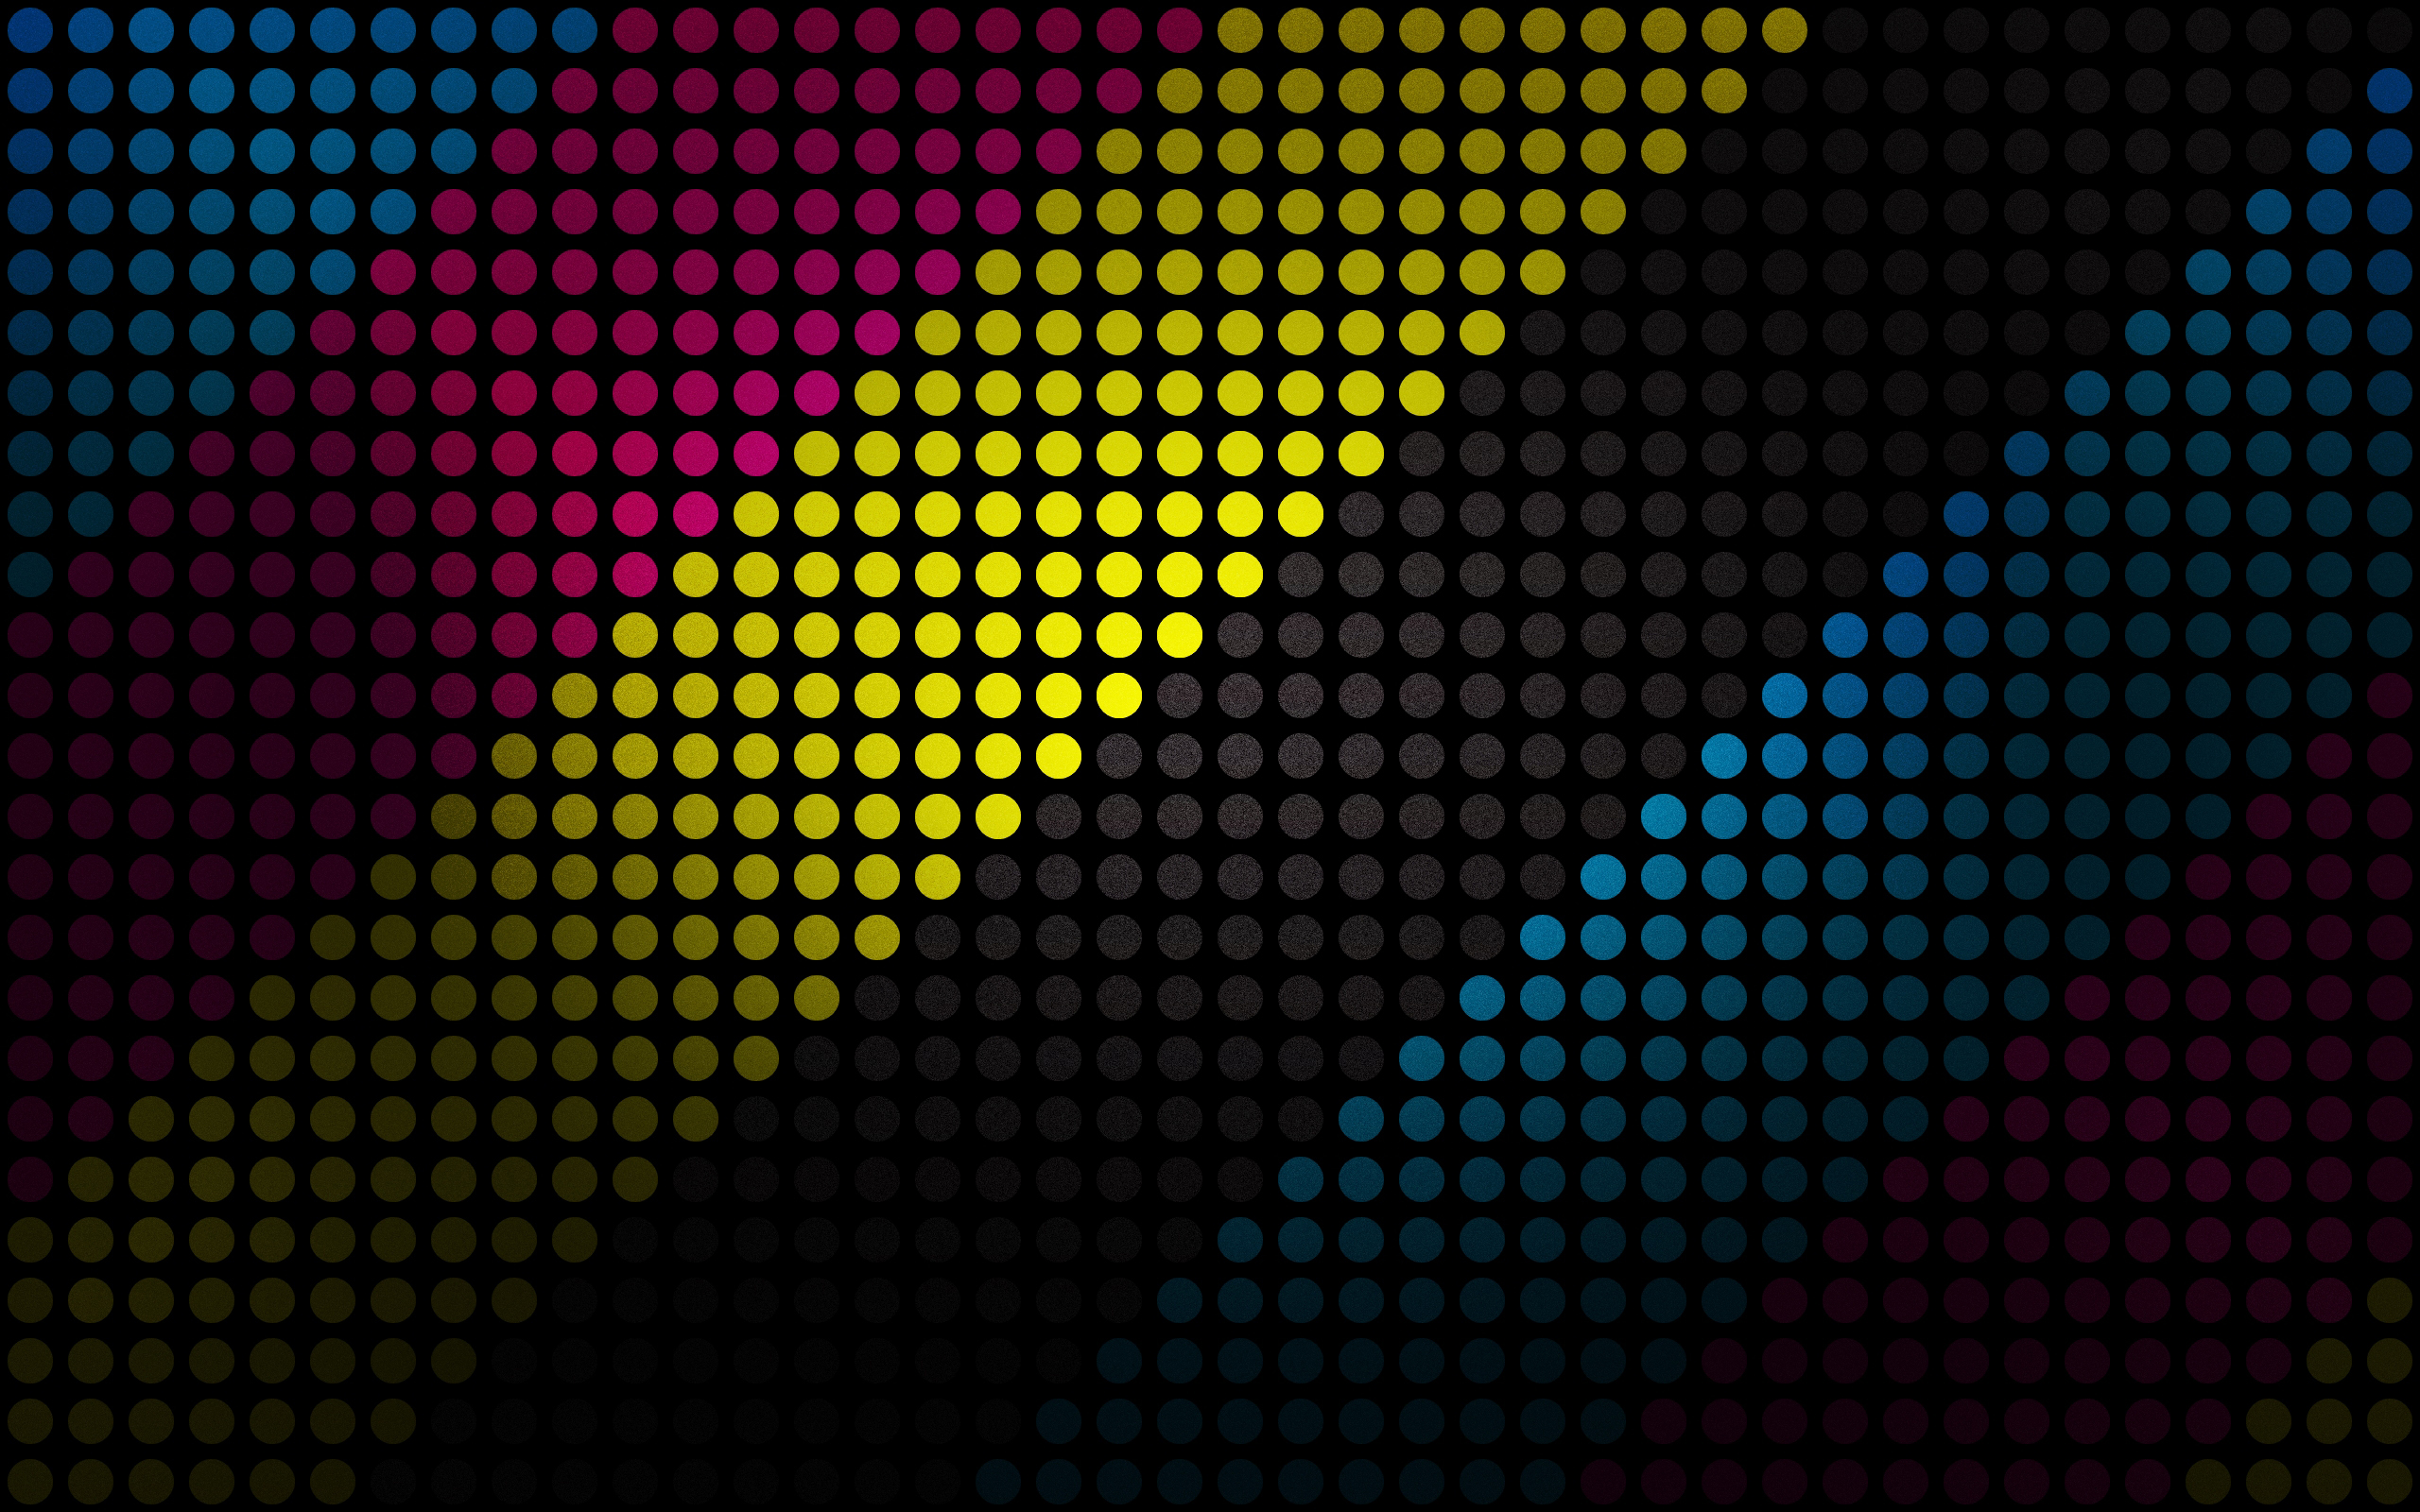 Modern Colorful Abstract Wallpaper D 11753 Hd Wallpapers Background 2560x1600